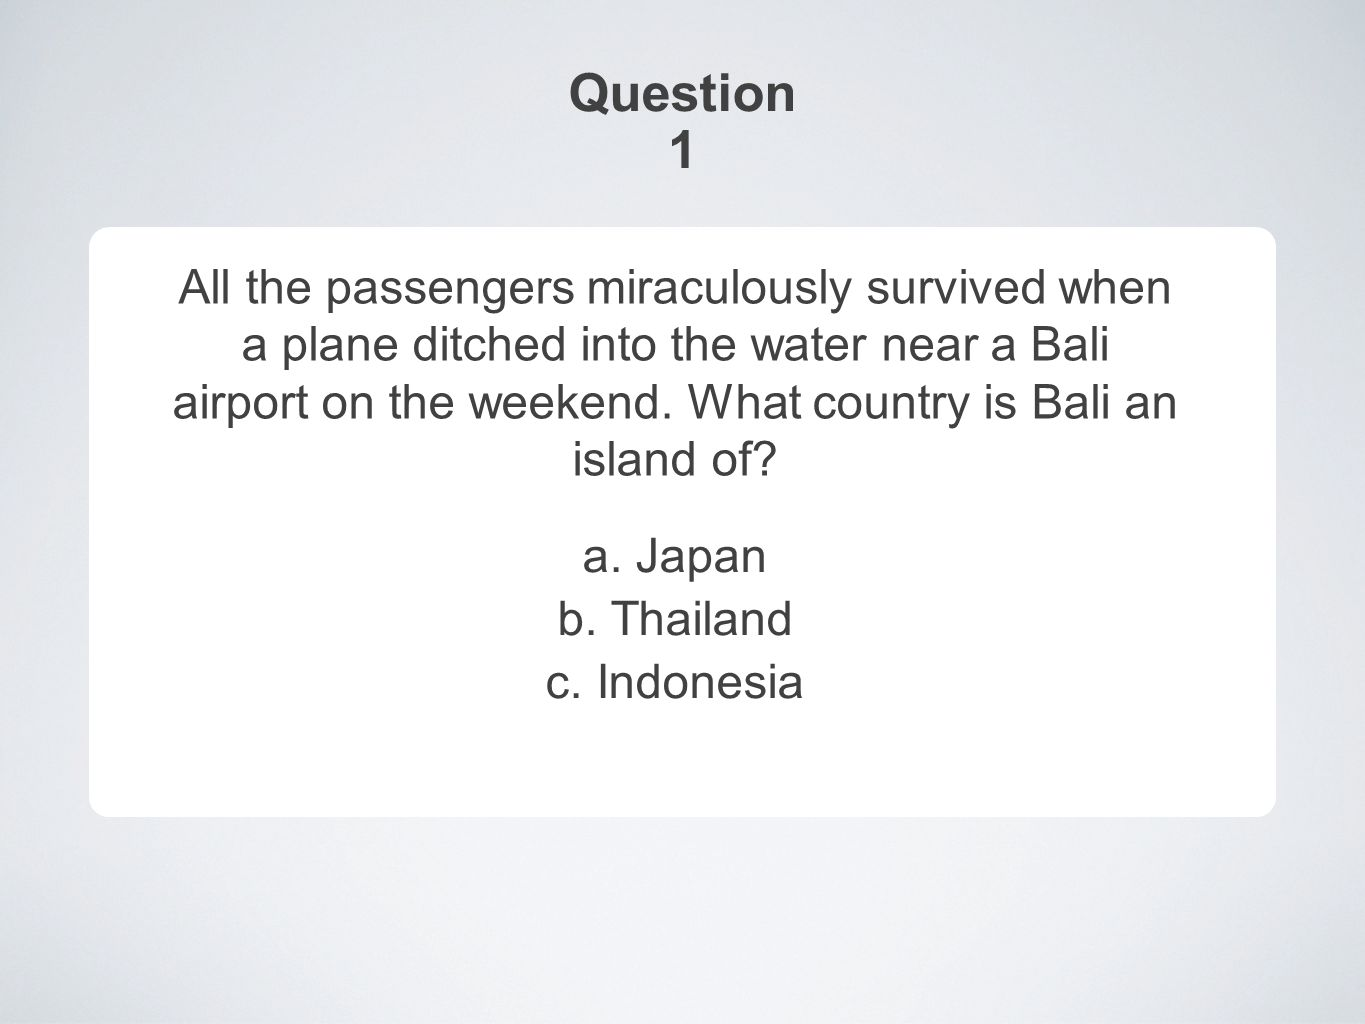 Answer 1 All the passengers miraculously survived when a plane ditched into the water near a Bali airport on the weekend.